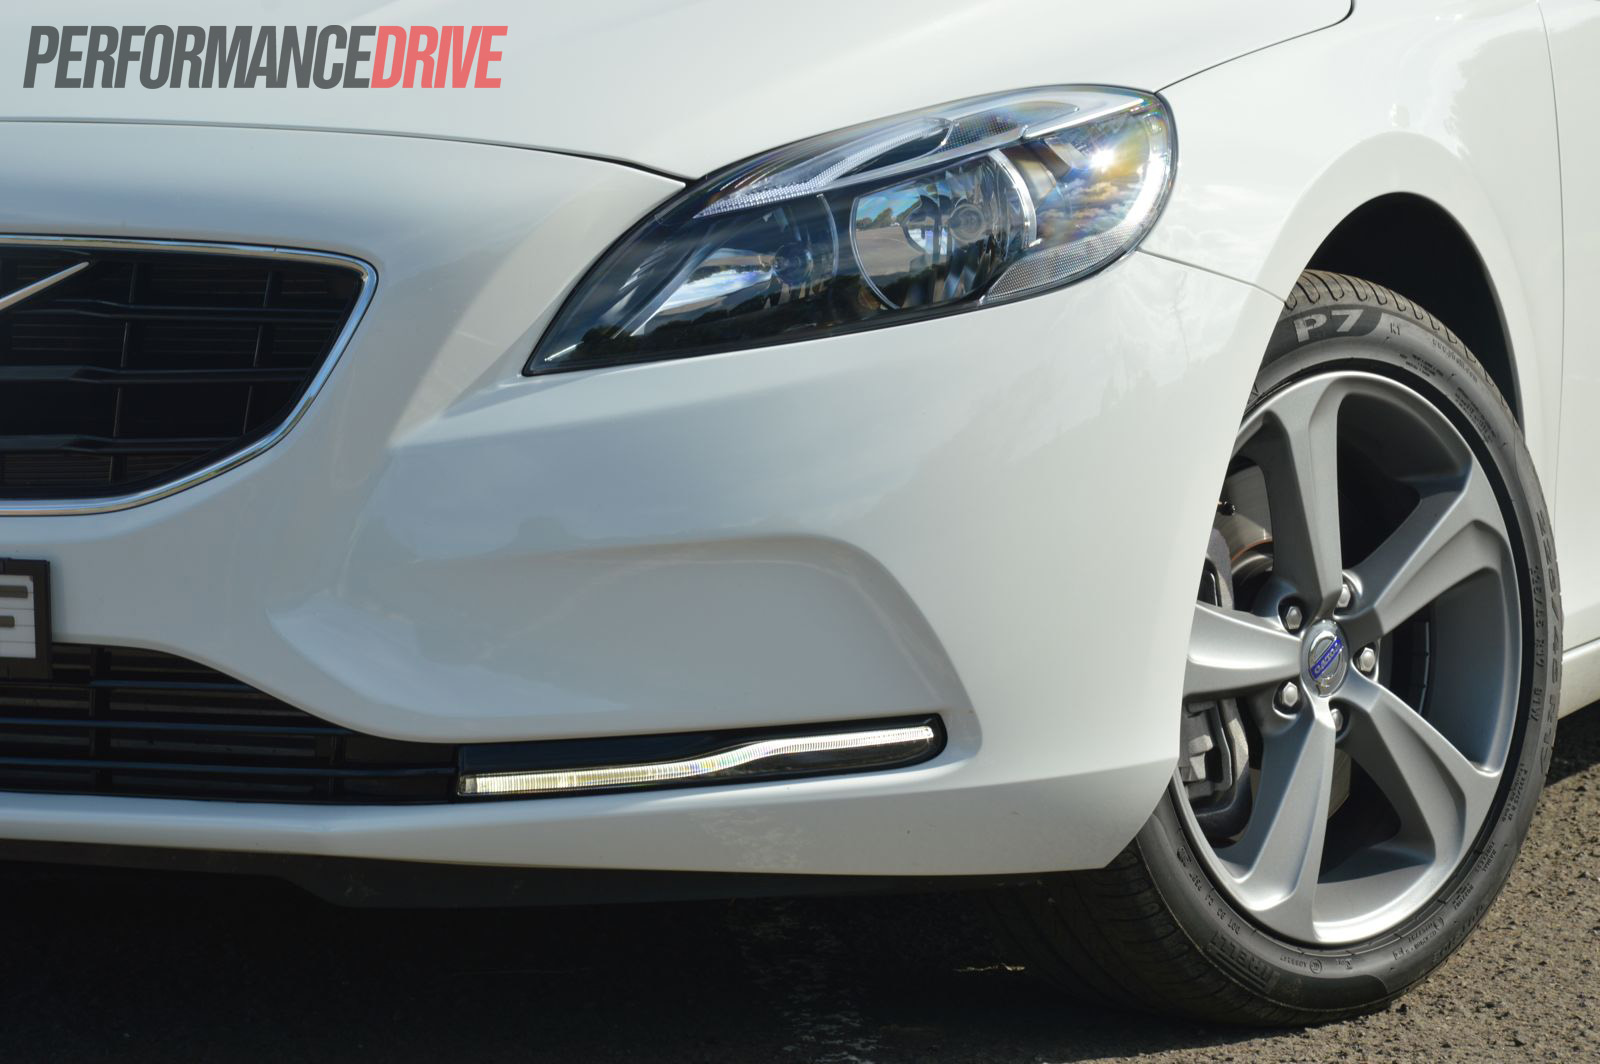 2013 Volvo V40 D4 LED daytime lights